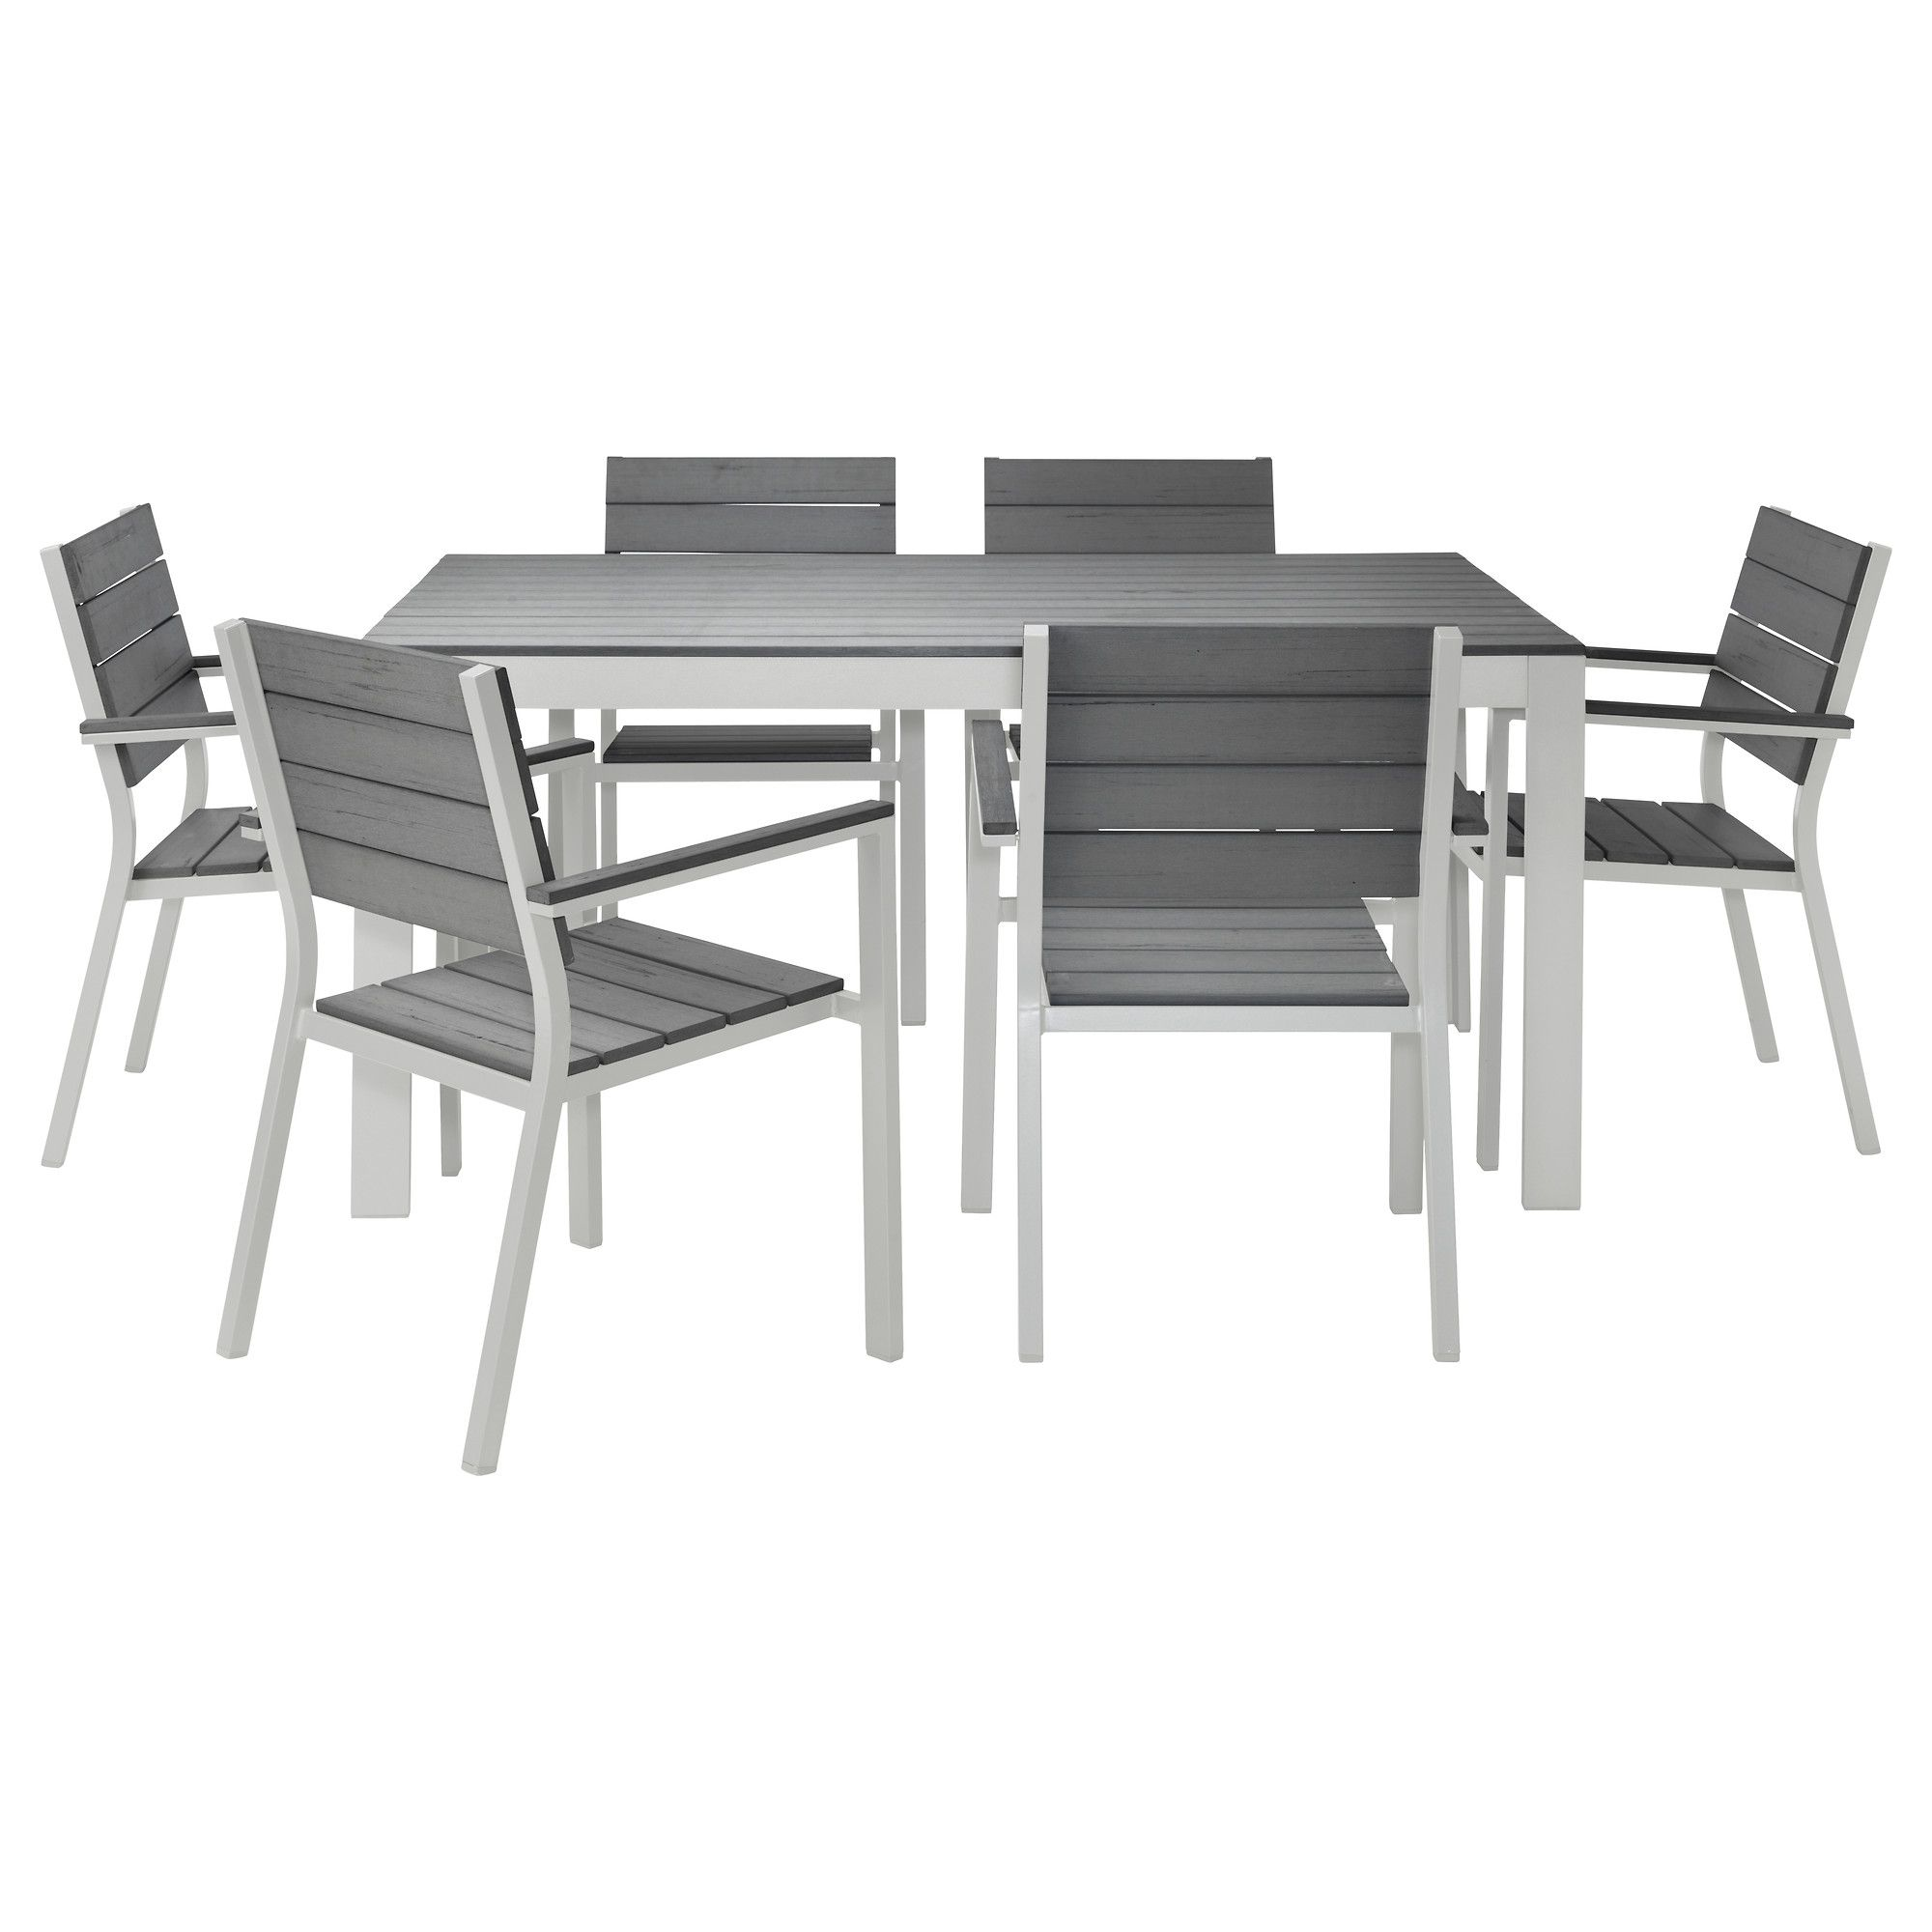 For Outside FALSTER Table and 6 chairs gray IKEA $505